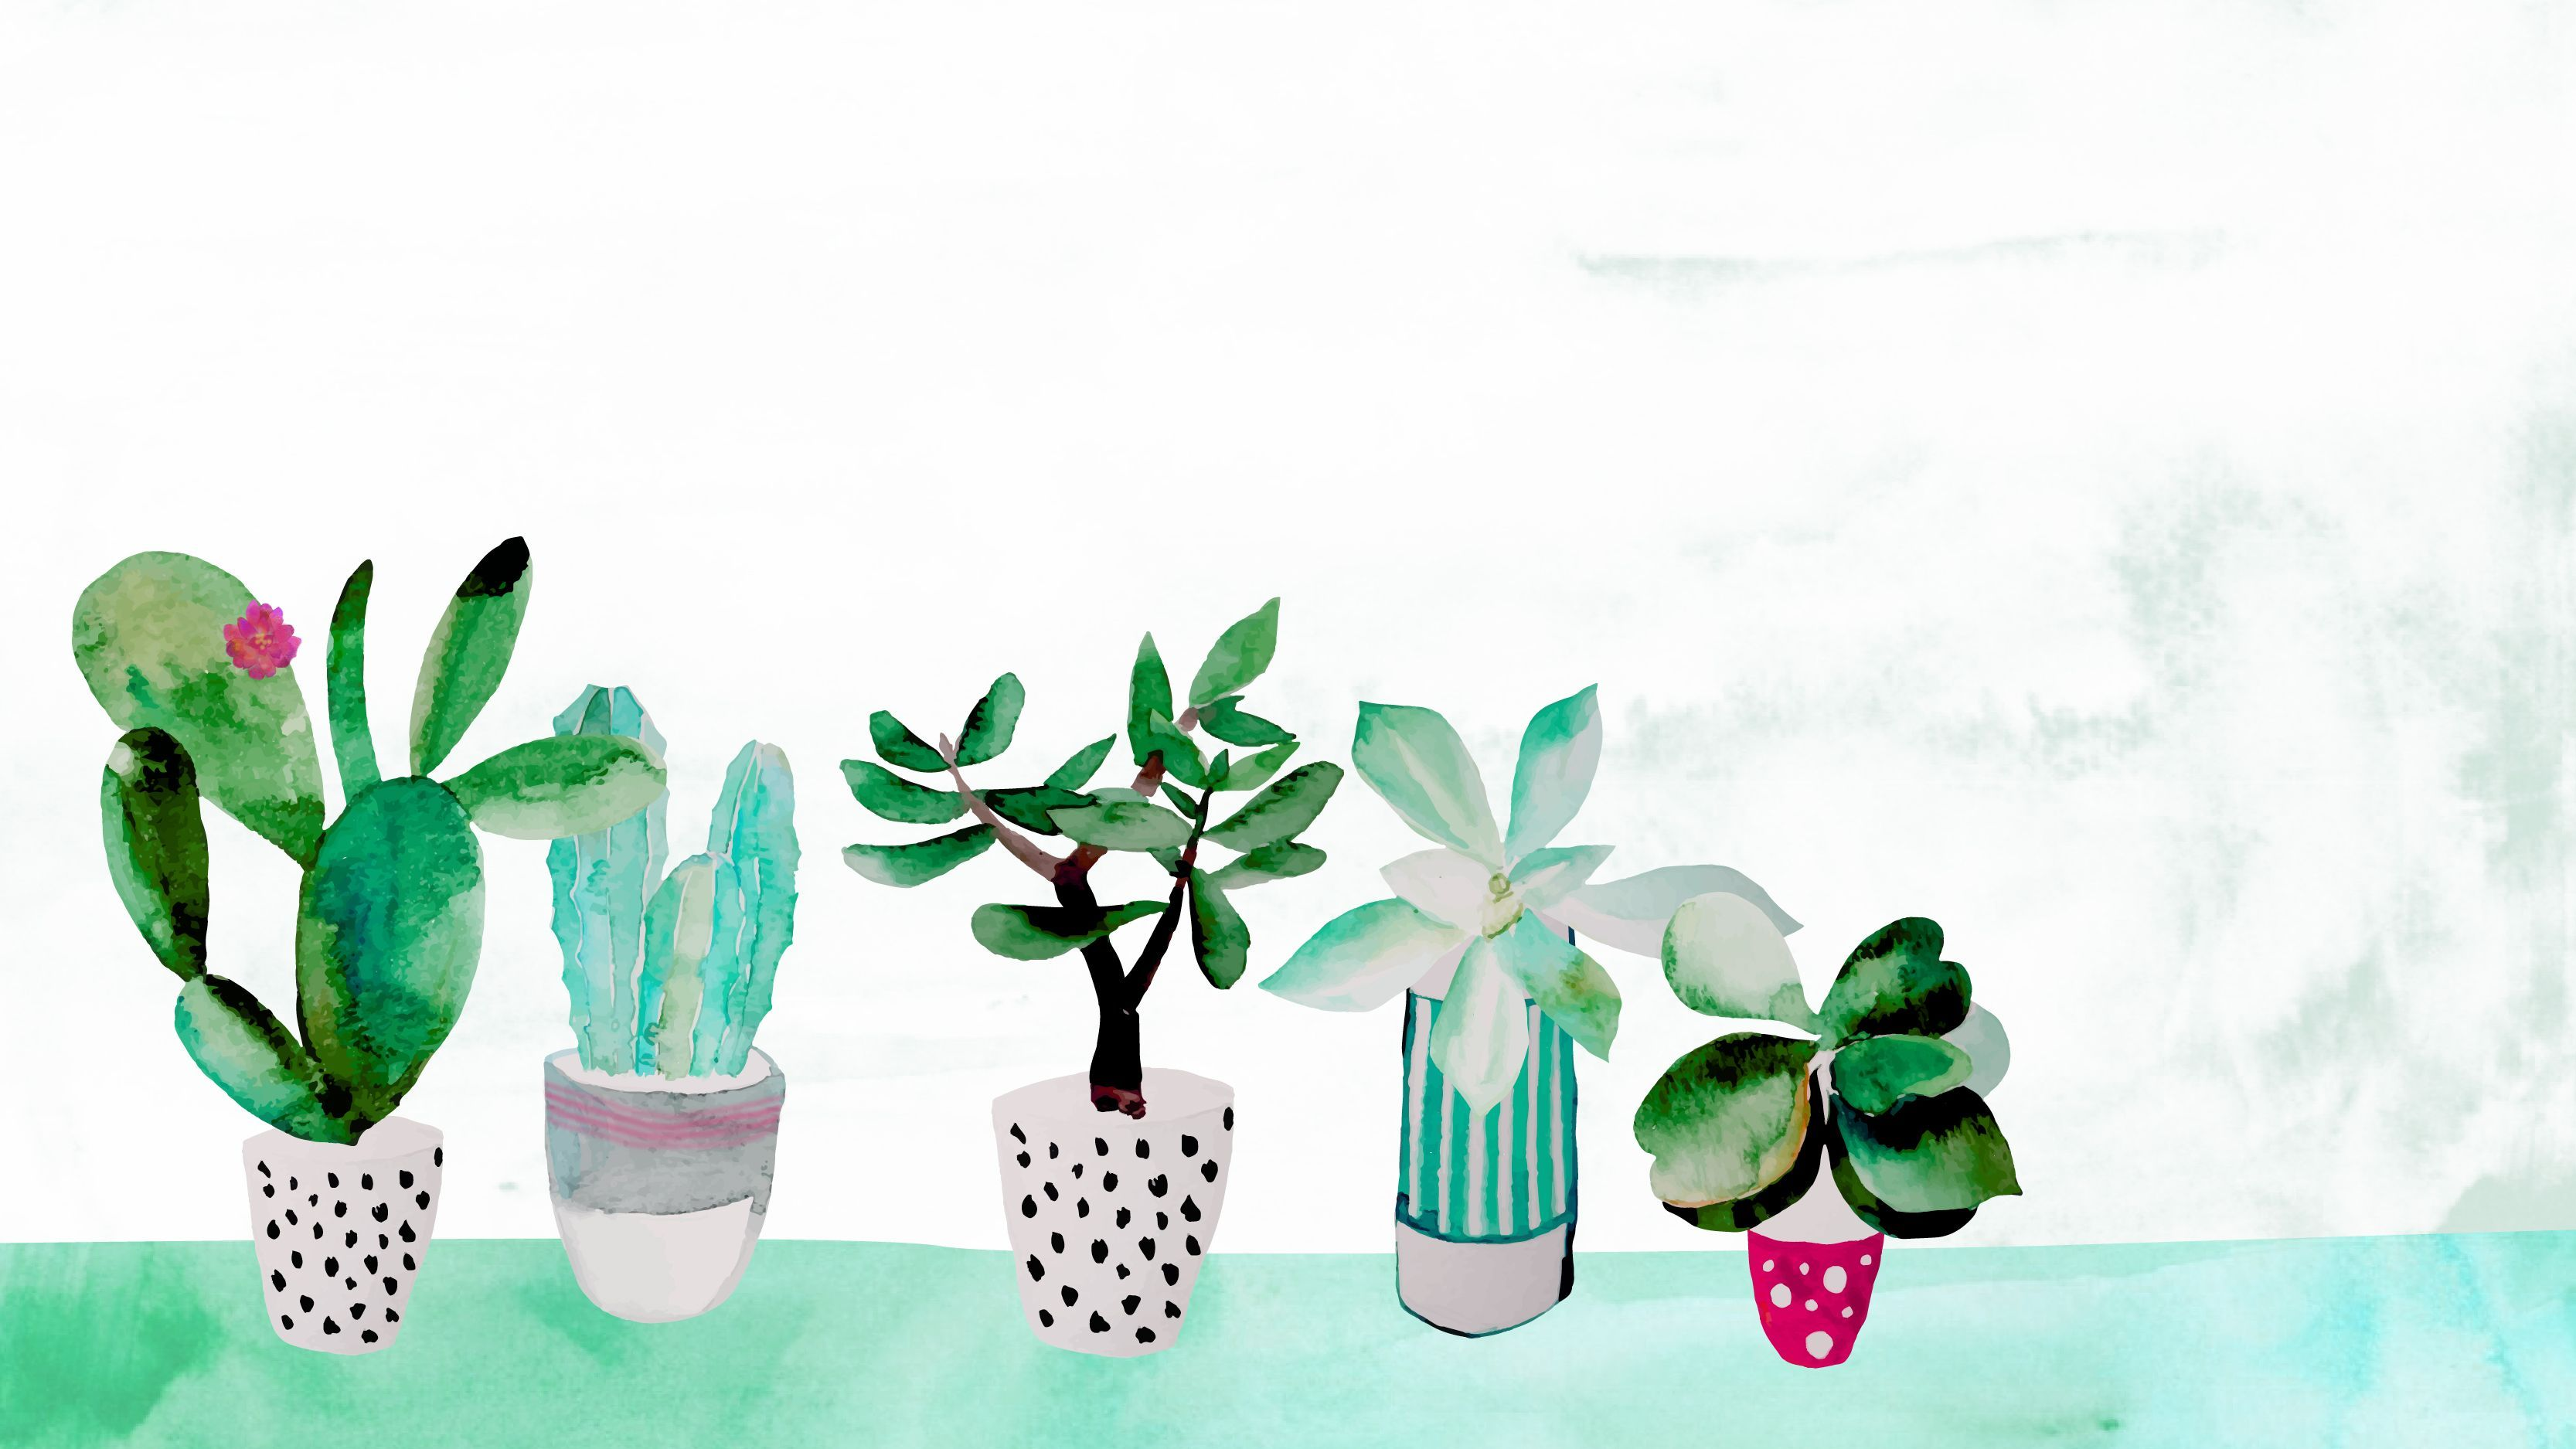 3333x1875 Pin by Aria Quintana on Desktop wallpapers | Succulents ...